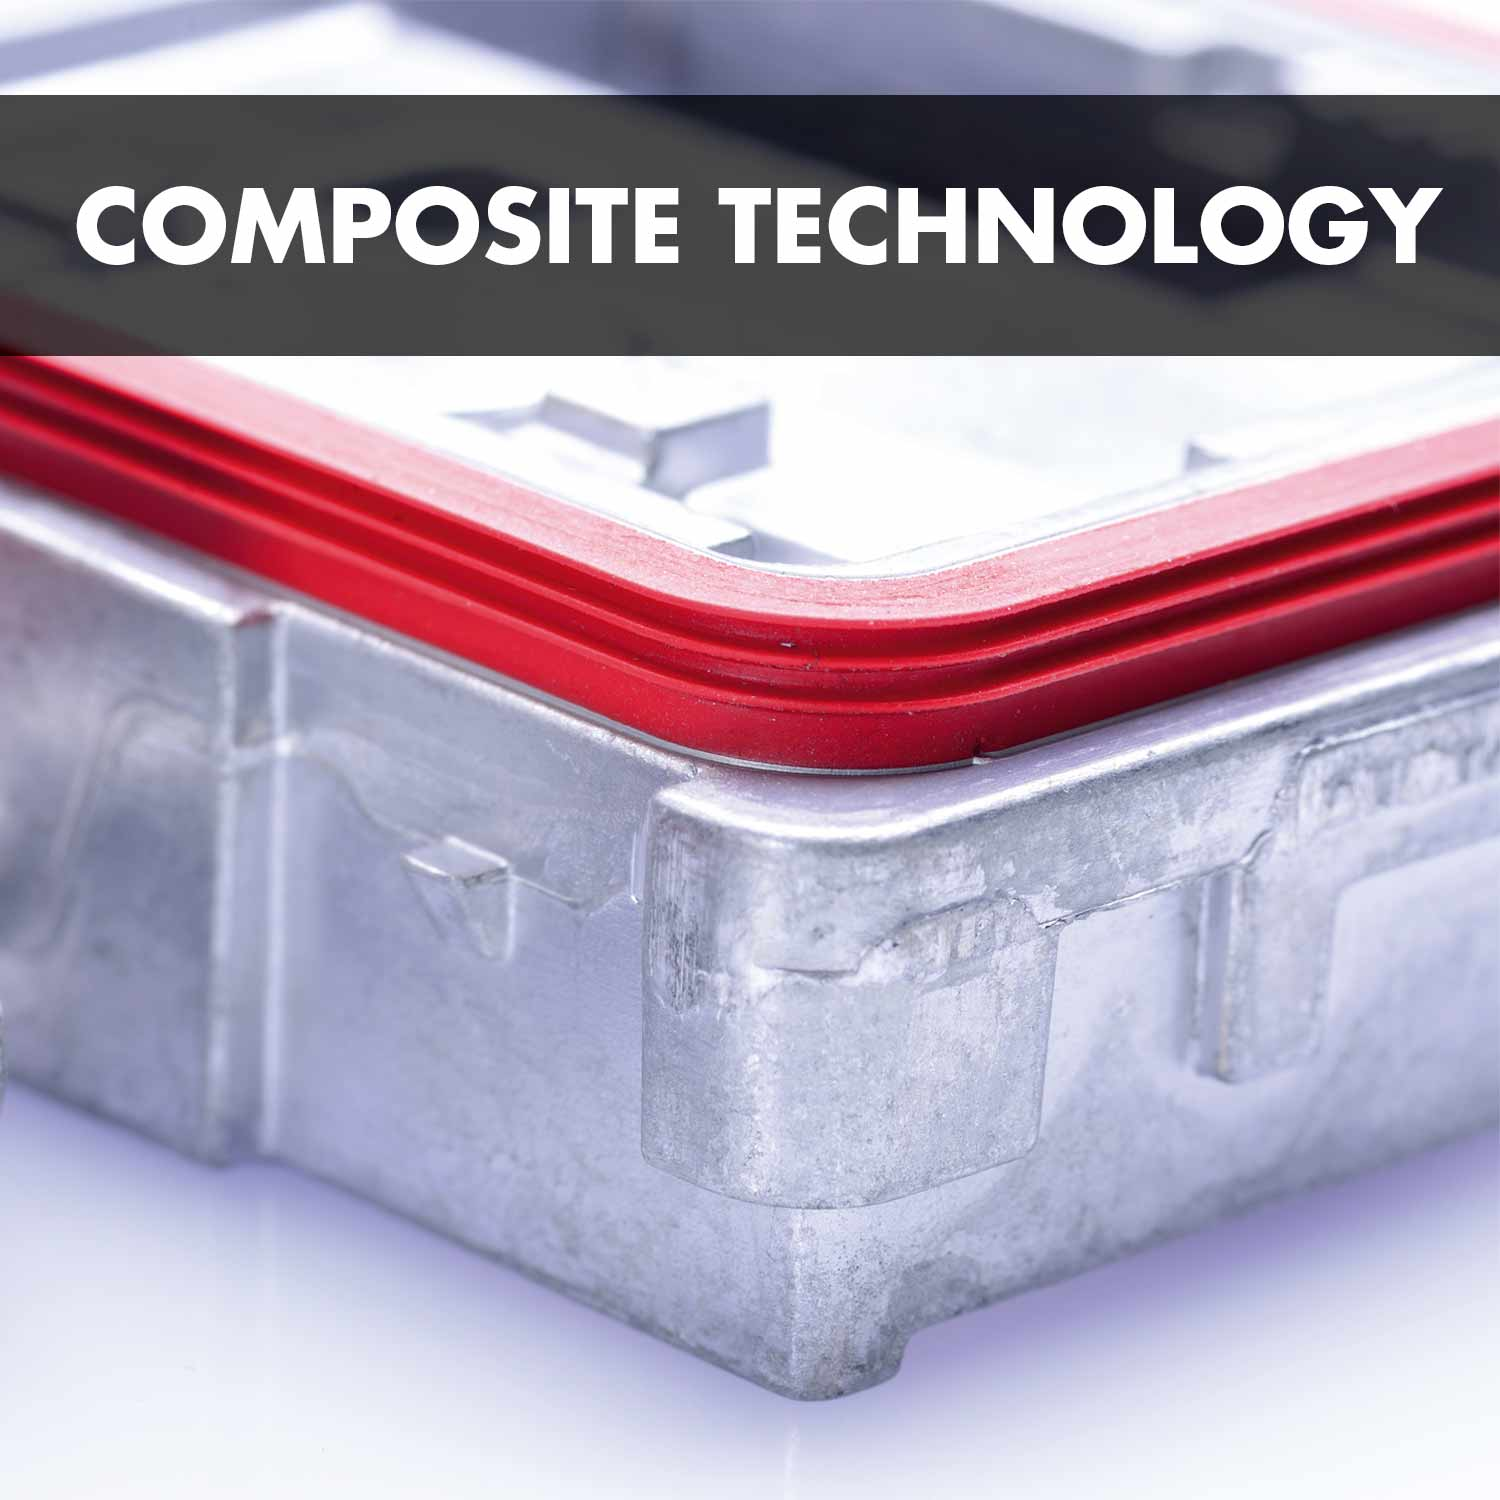 Composite technology: Elastic material vulcanised onto solid support materials.